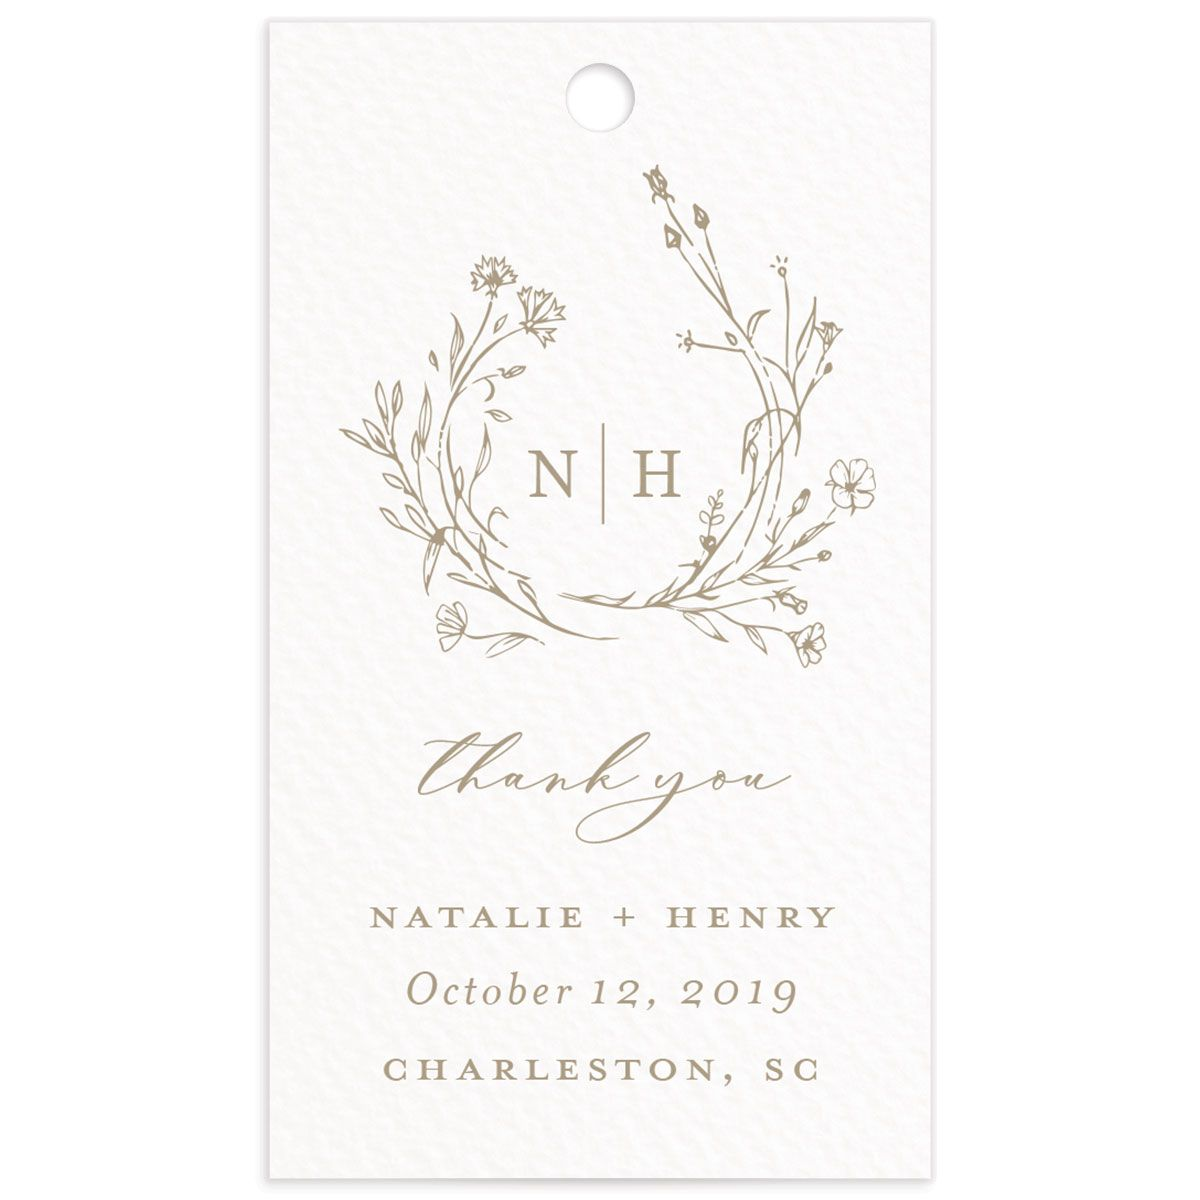 Natural Monogram wedding favor gift tag fronts in tan